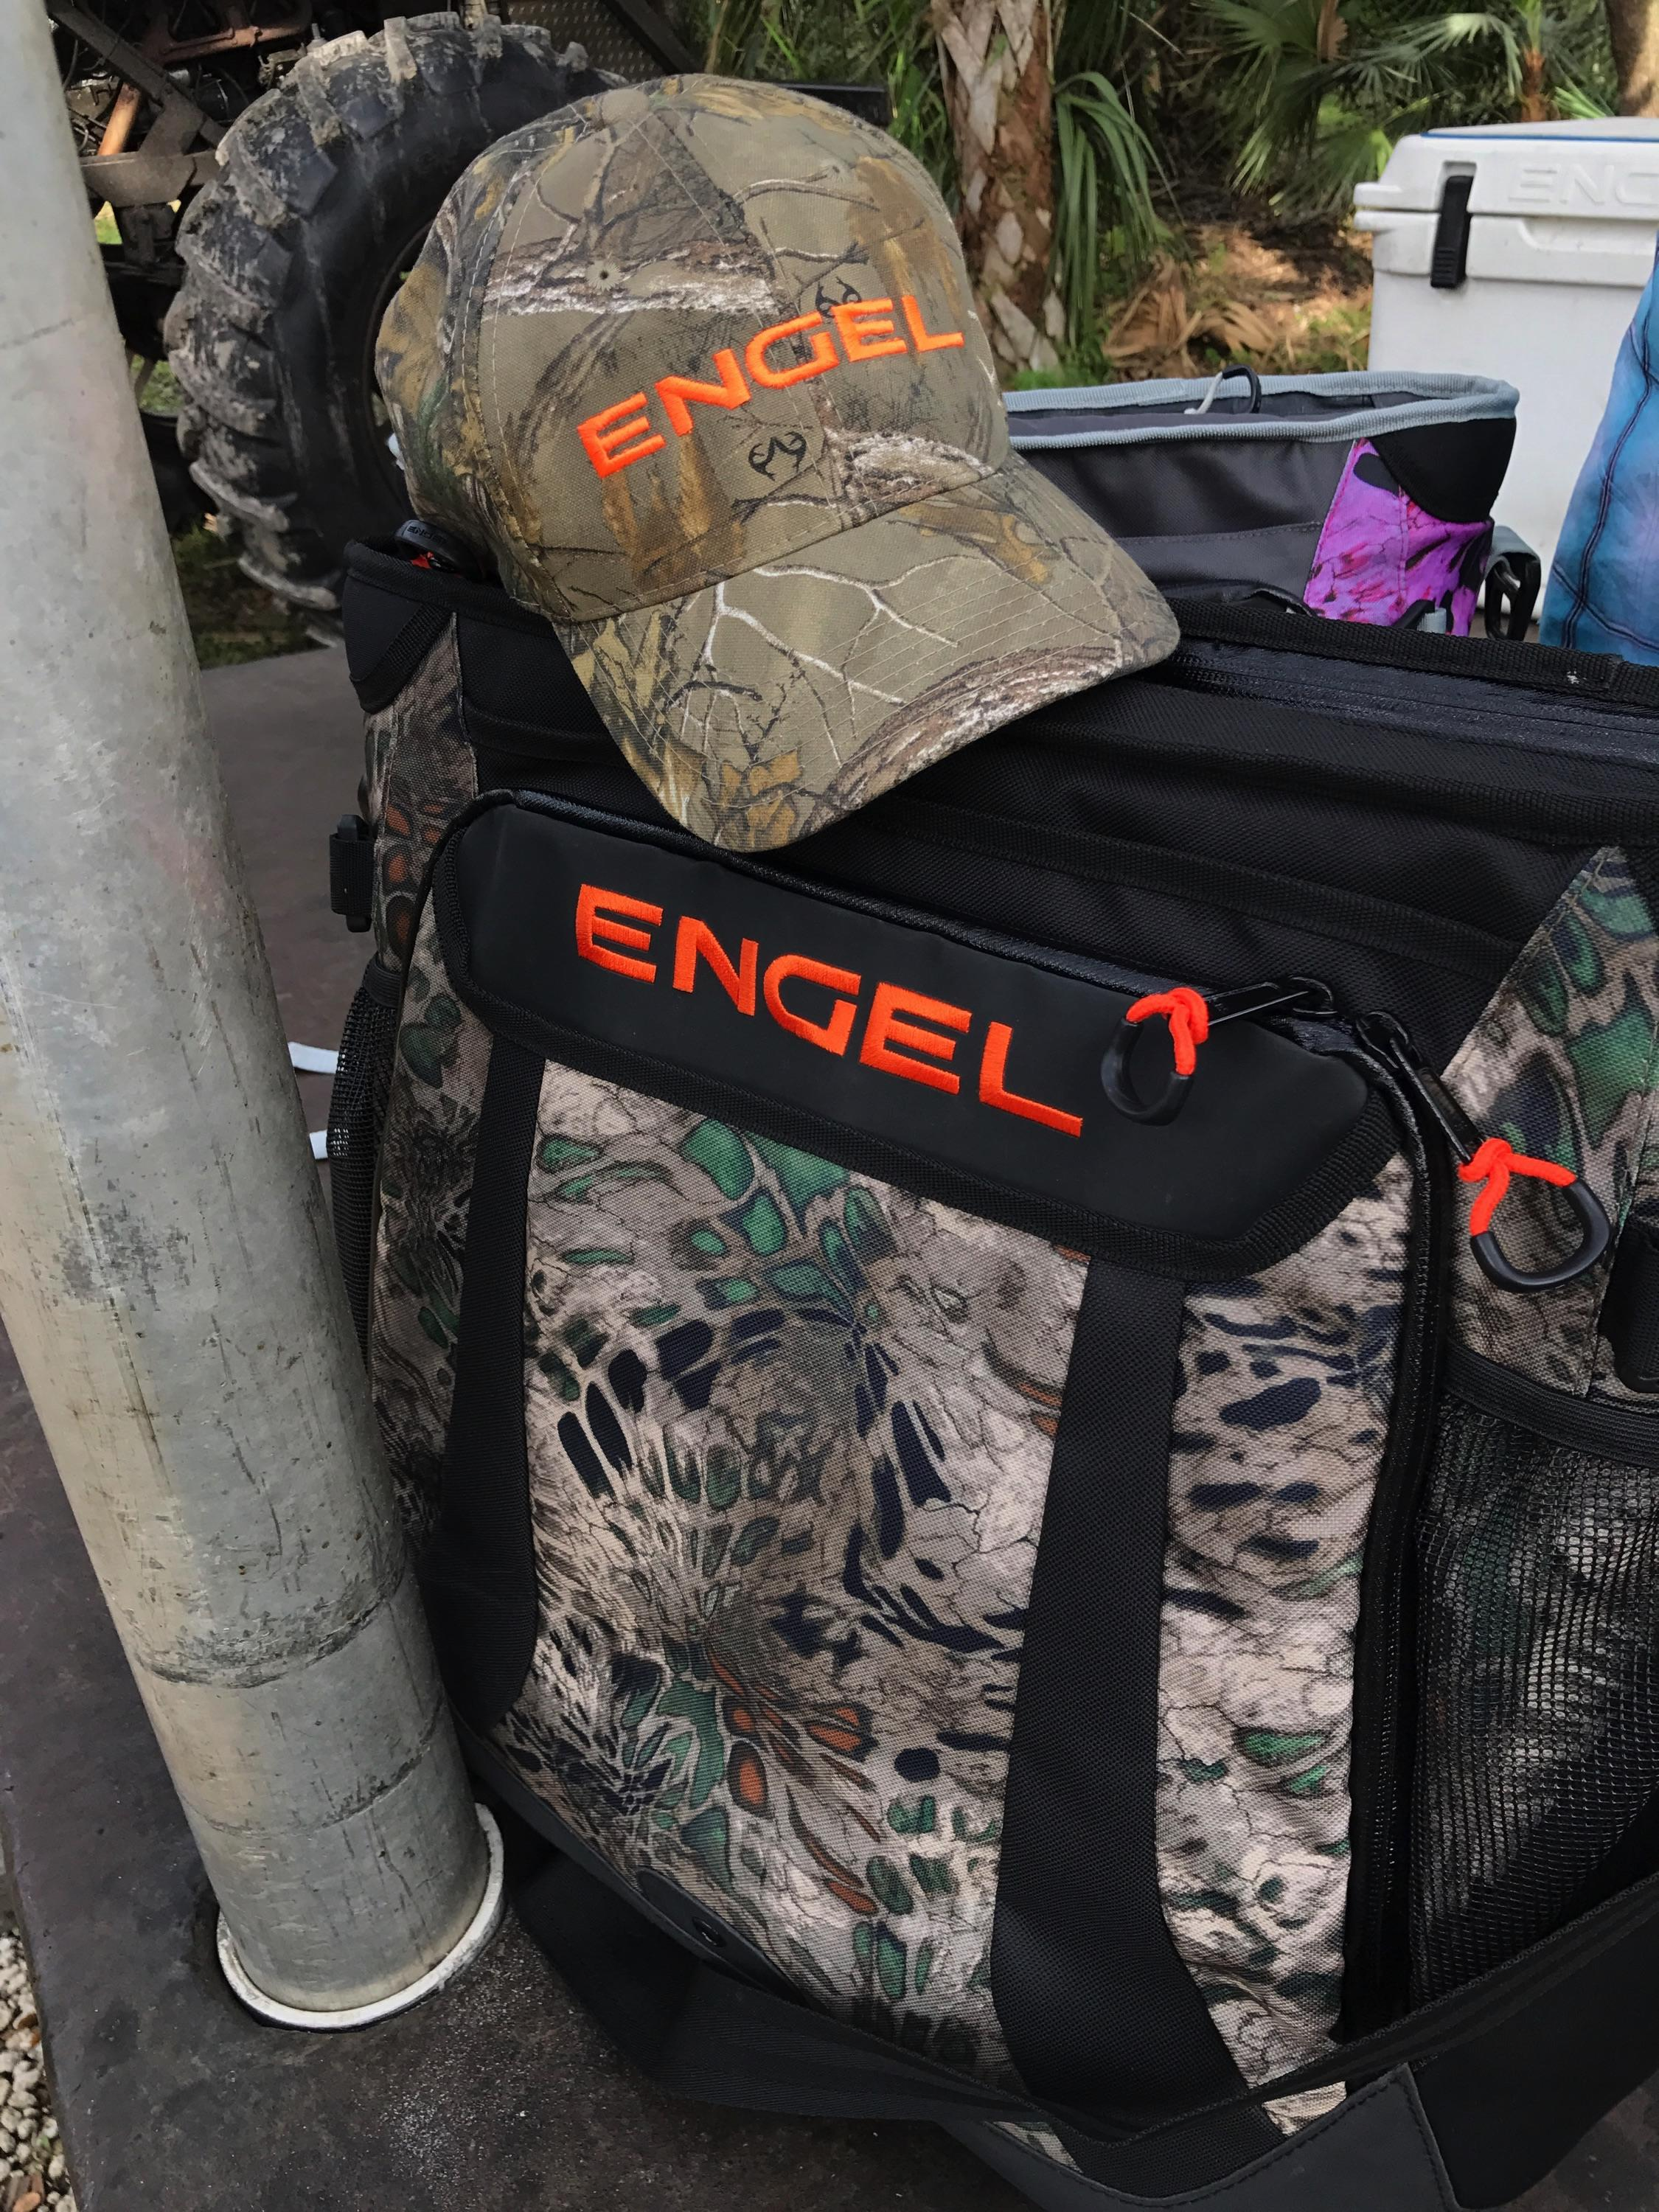 Engel Soft Sided Backpack Cooler Review